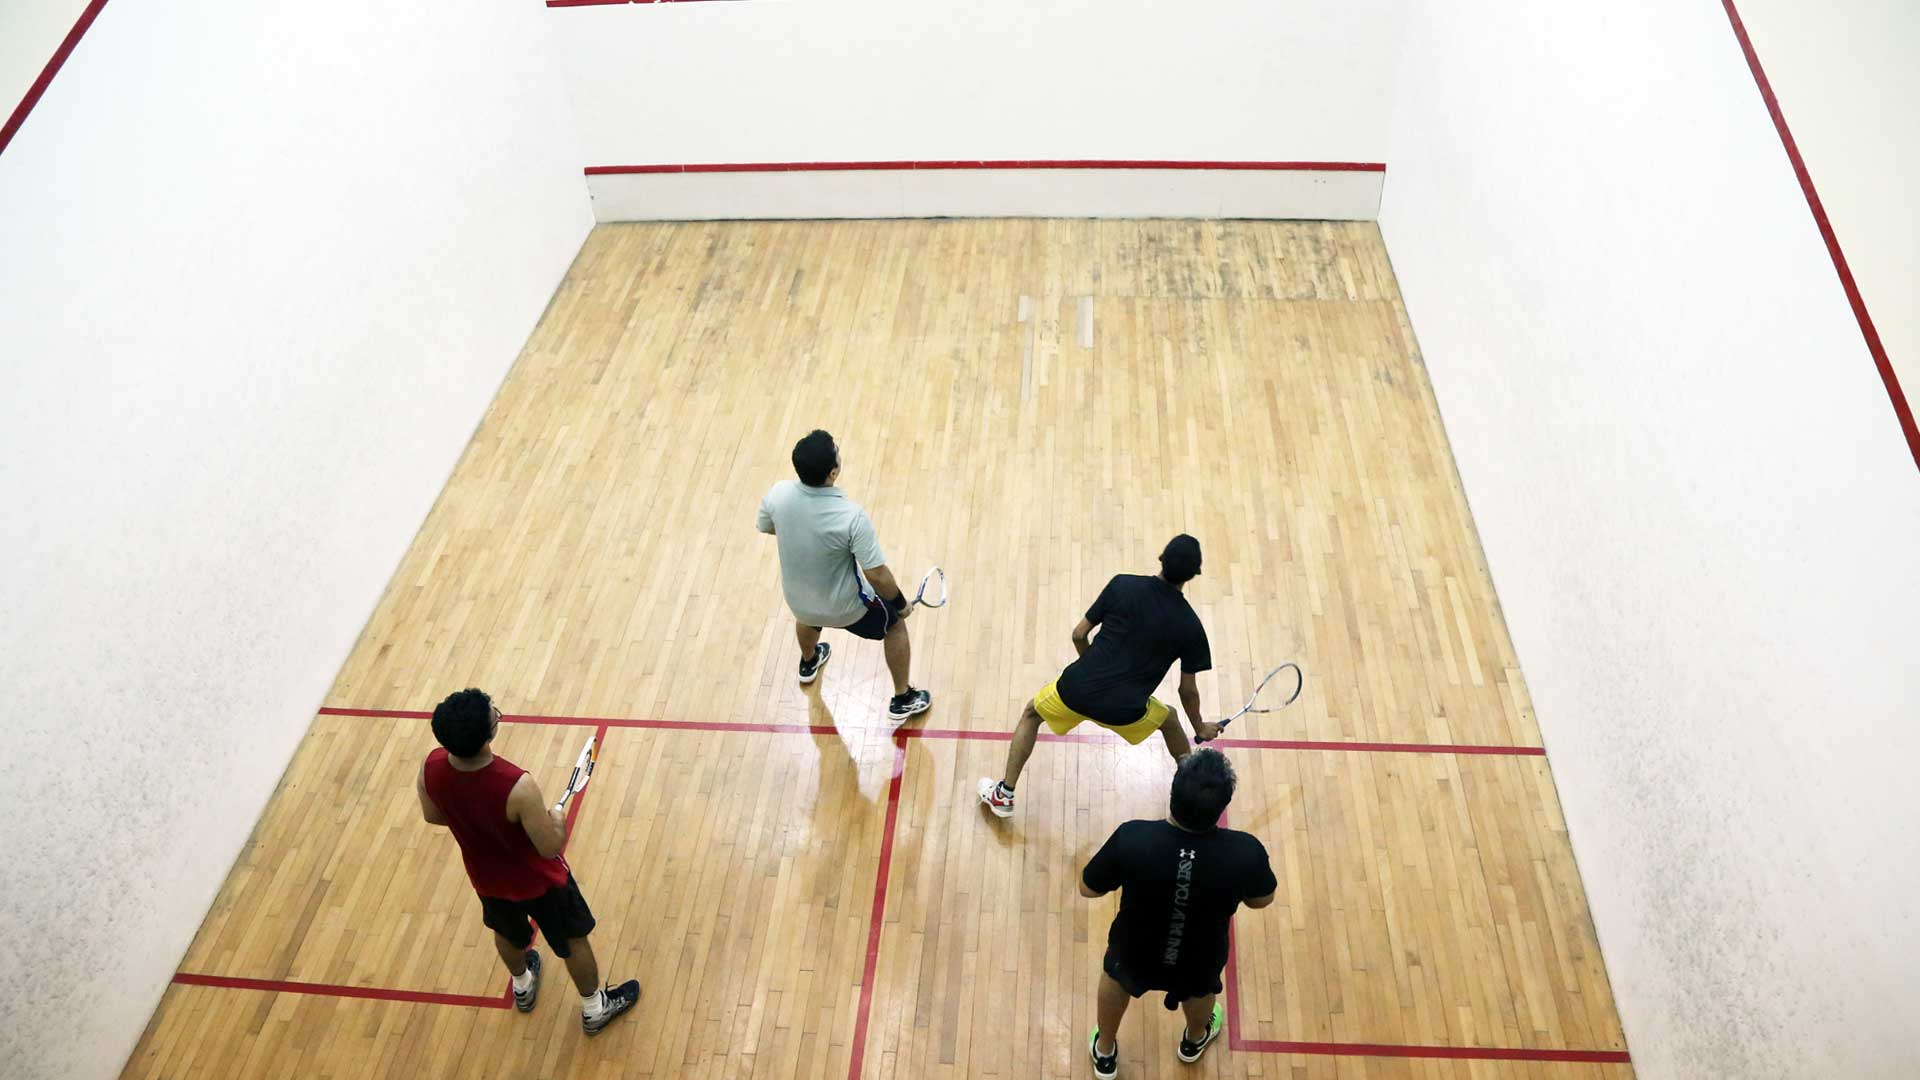 banquet halls in andheri,badminton court in andheri,snooker parlour in andheri,carrom club in andheri,chess club in andheri,squash courts in andheri,swimming pool in andheri,lawn tennis club in andheri,table tennis court in andheri,health club in andheri,gym in andheri,fitness hub in andheri,card room in andheri,playing cards club in andheri,room service in andheri,library in andheri,luxury banquet halls in andheri,finest luxury banquet halls in andheri,recreation club in mumbai,the andheri recreation club mumbai, maharashtra,andheri recreation club banquet hall,andheri recreation club restaurant menu,recreation club banquet hall,andheri recreation club affiliations,recreation club andheri west menu,andheri recreation club menu